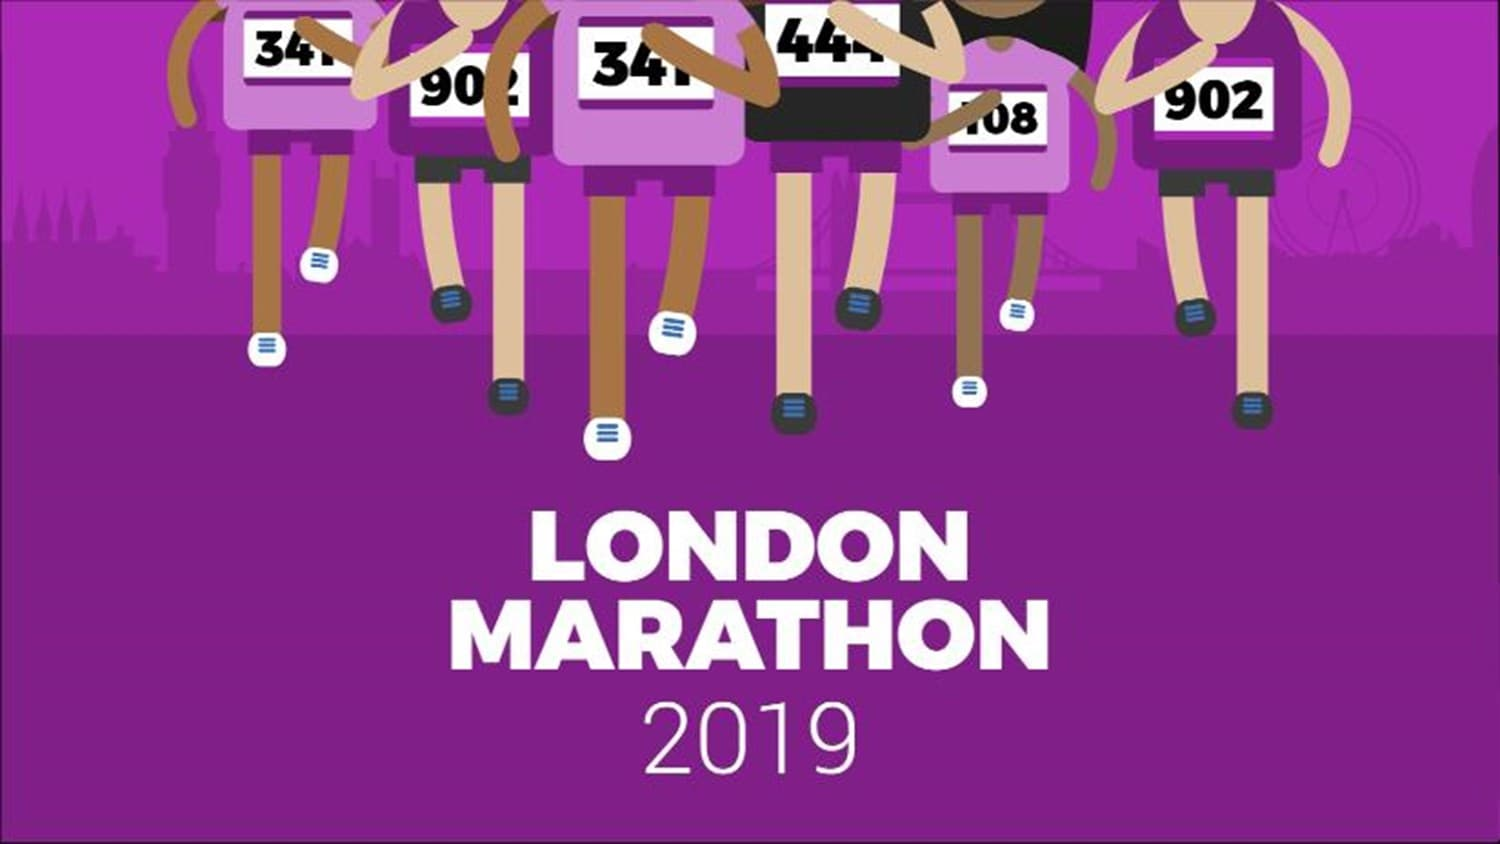 CBHC's Tom Perry completed the Virgin Money London Marathon 2019